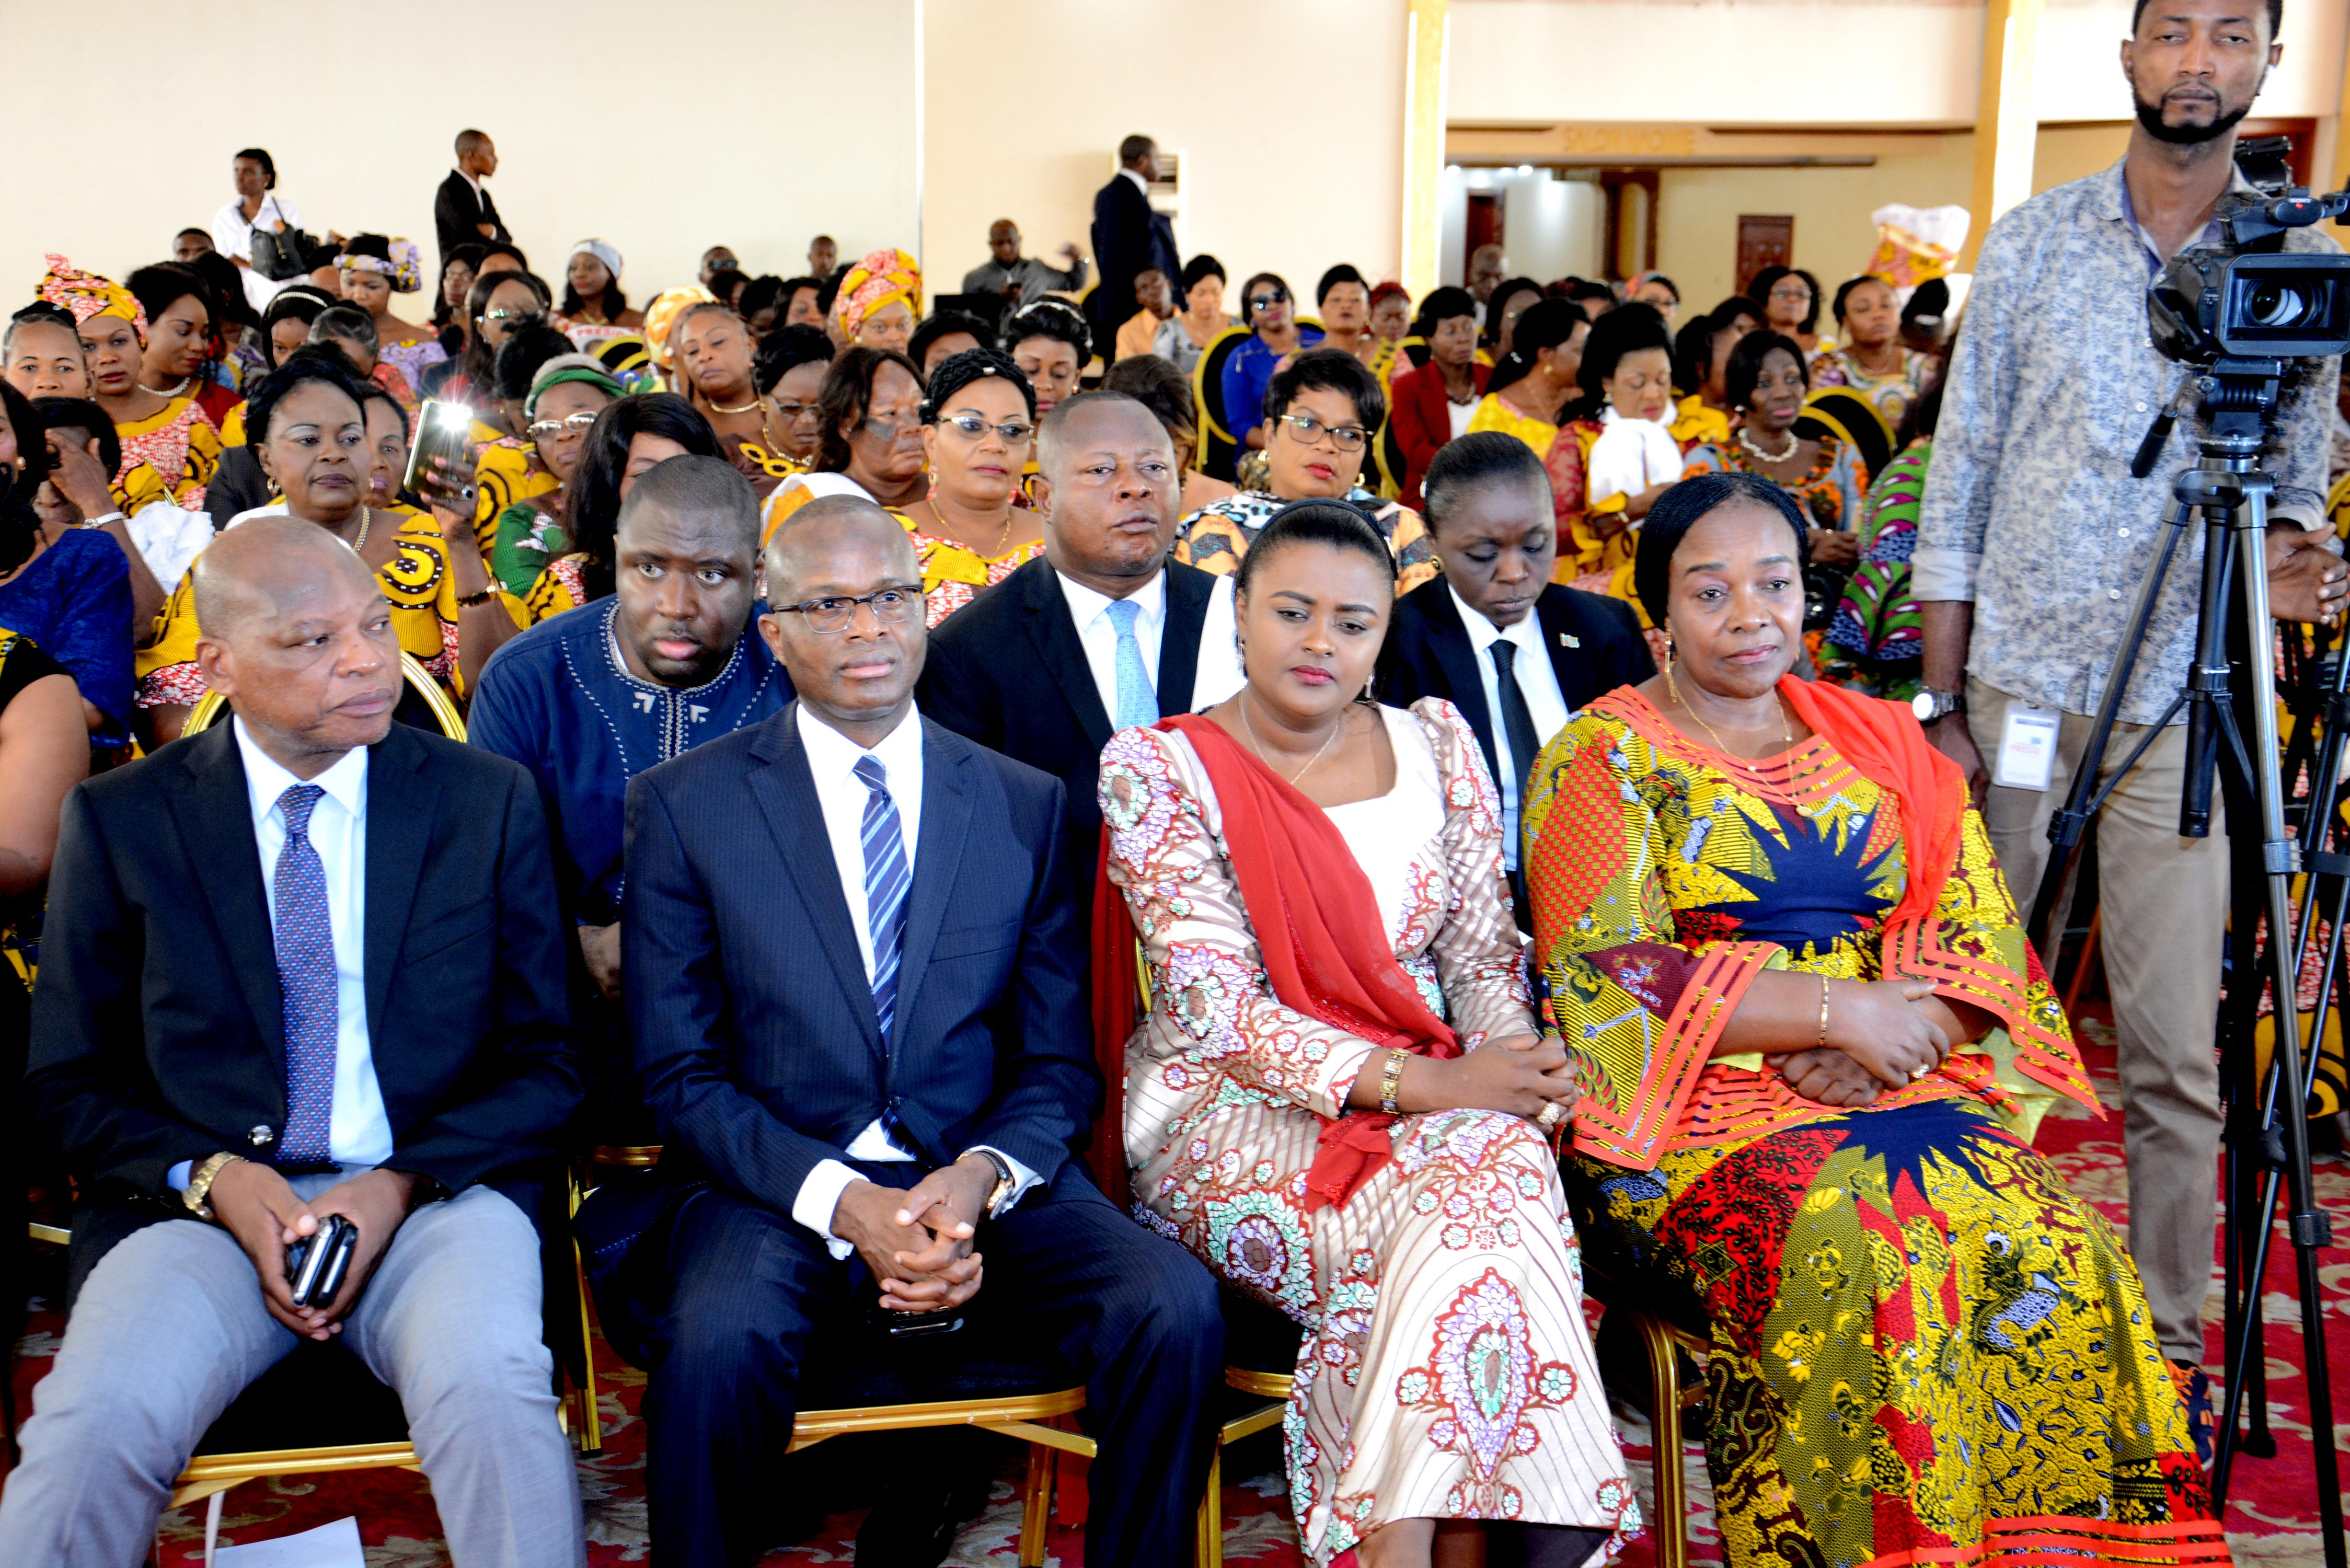 The members of the government and the Senat at the forefront of the guests.